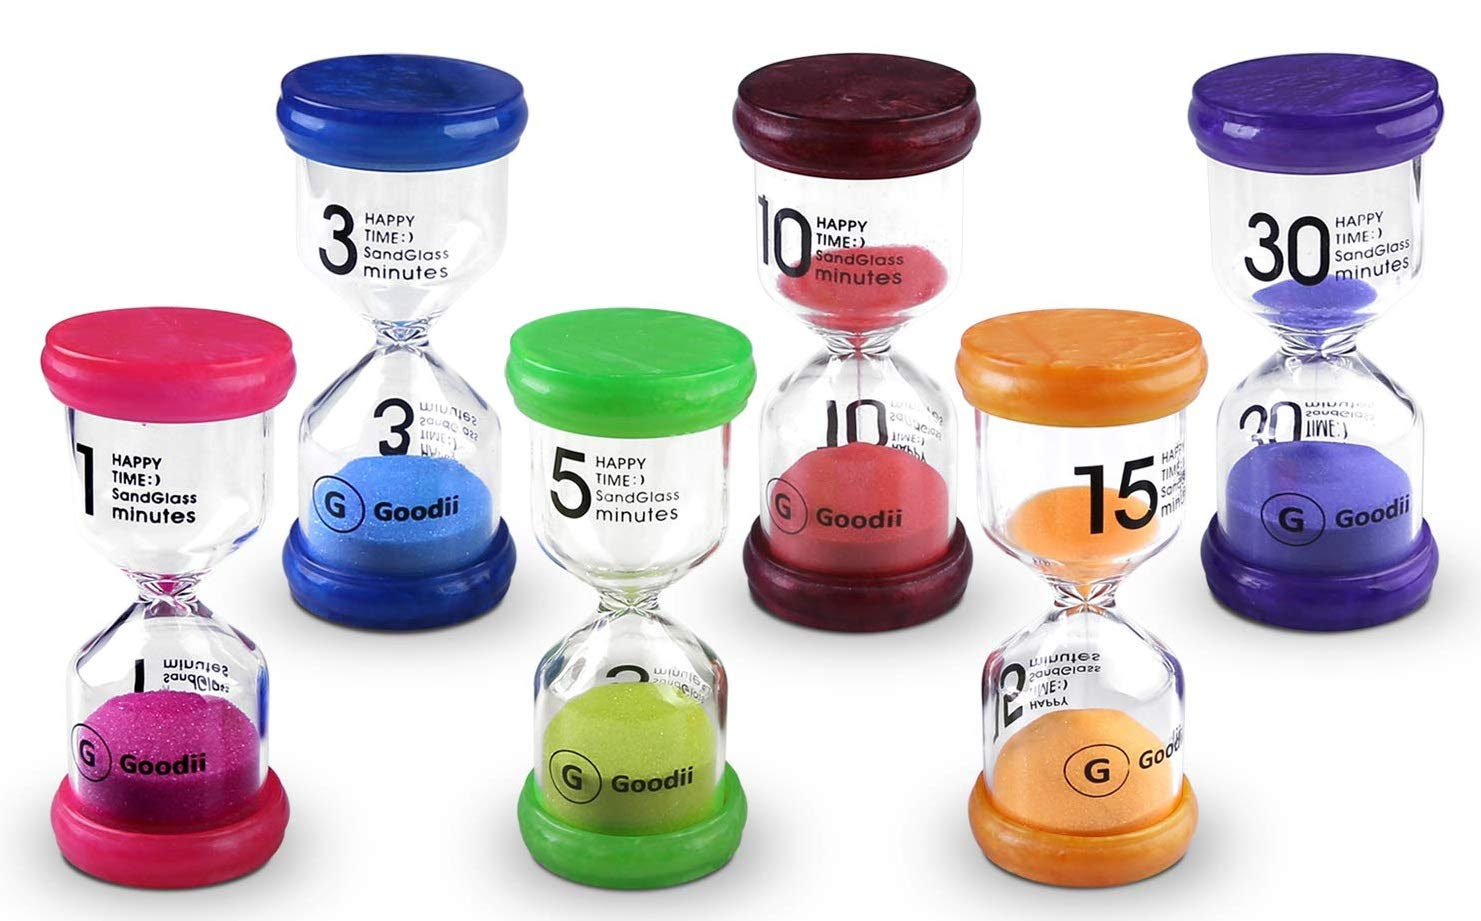 Goodii time timer, 6 Colors Sand Timers for kids, Hourglass Timer  1/3/5/10/15/30 minutes, Visual Timer for Kids, Hour glass for Classroom  Home Office